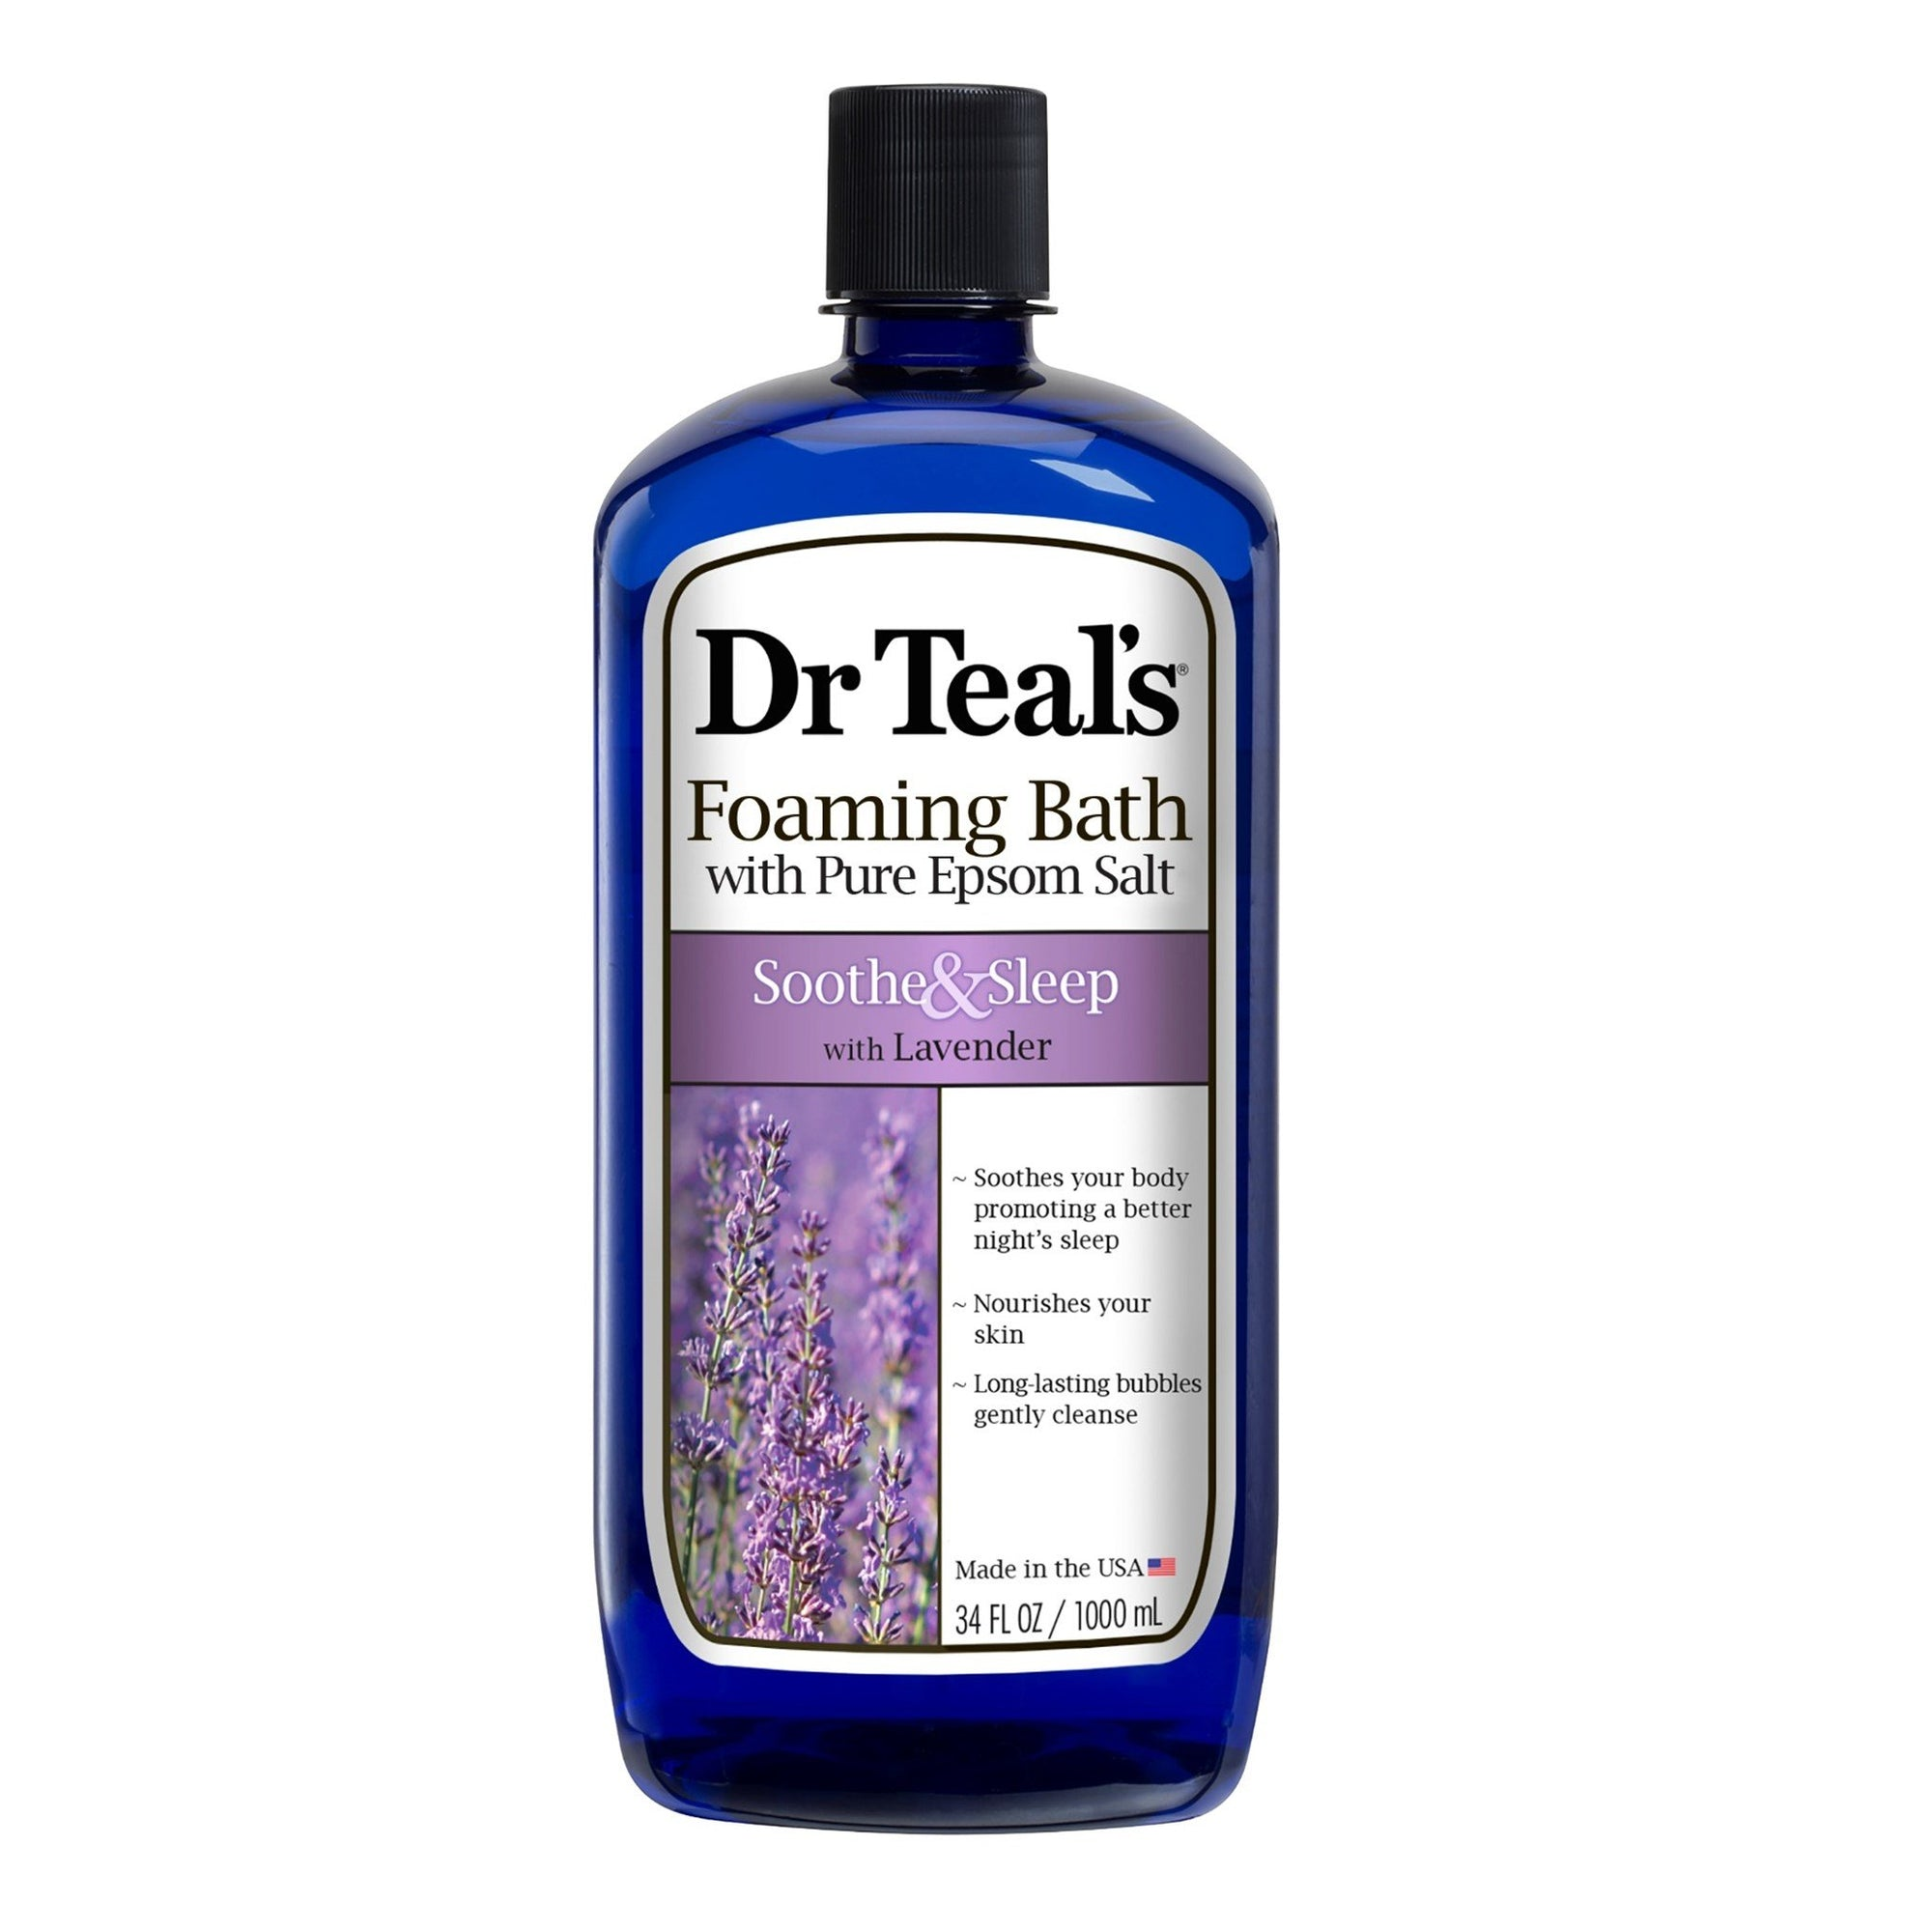 Dr Teal's Soothe & Sleep with Lavender Foaming Bath 1L